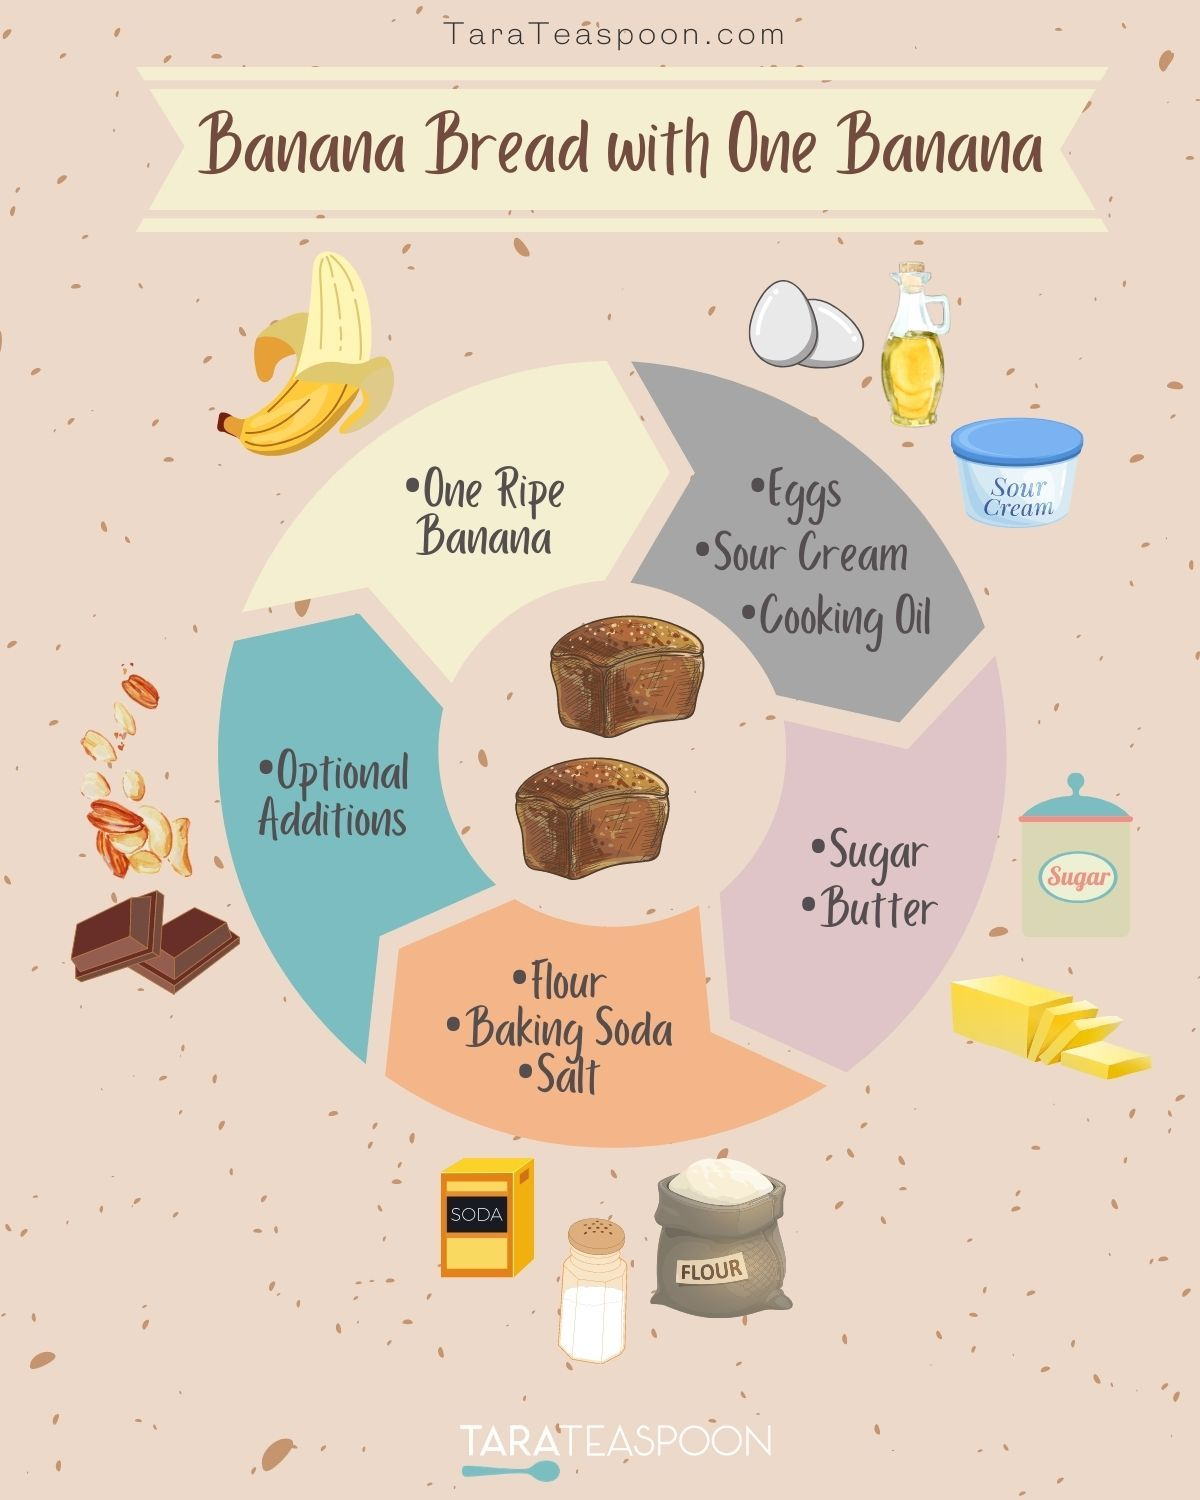 ingredient infographic listing banana bread ingredients